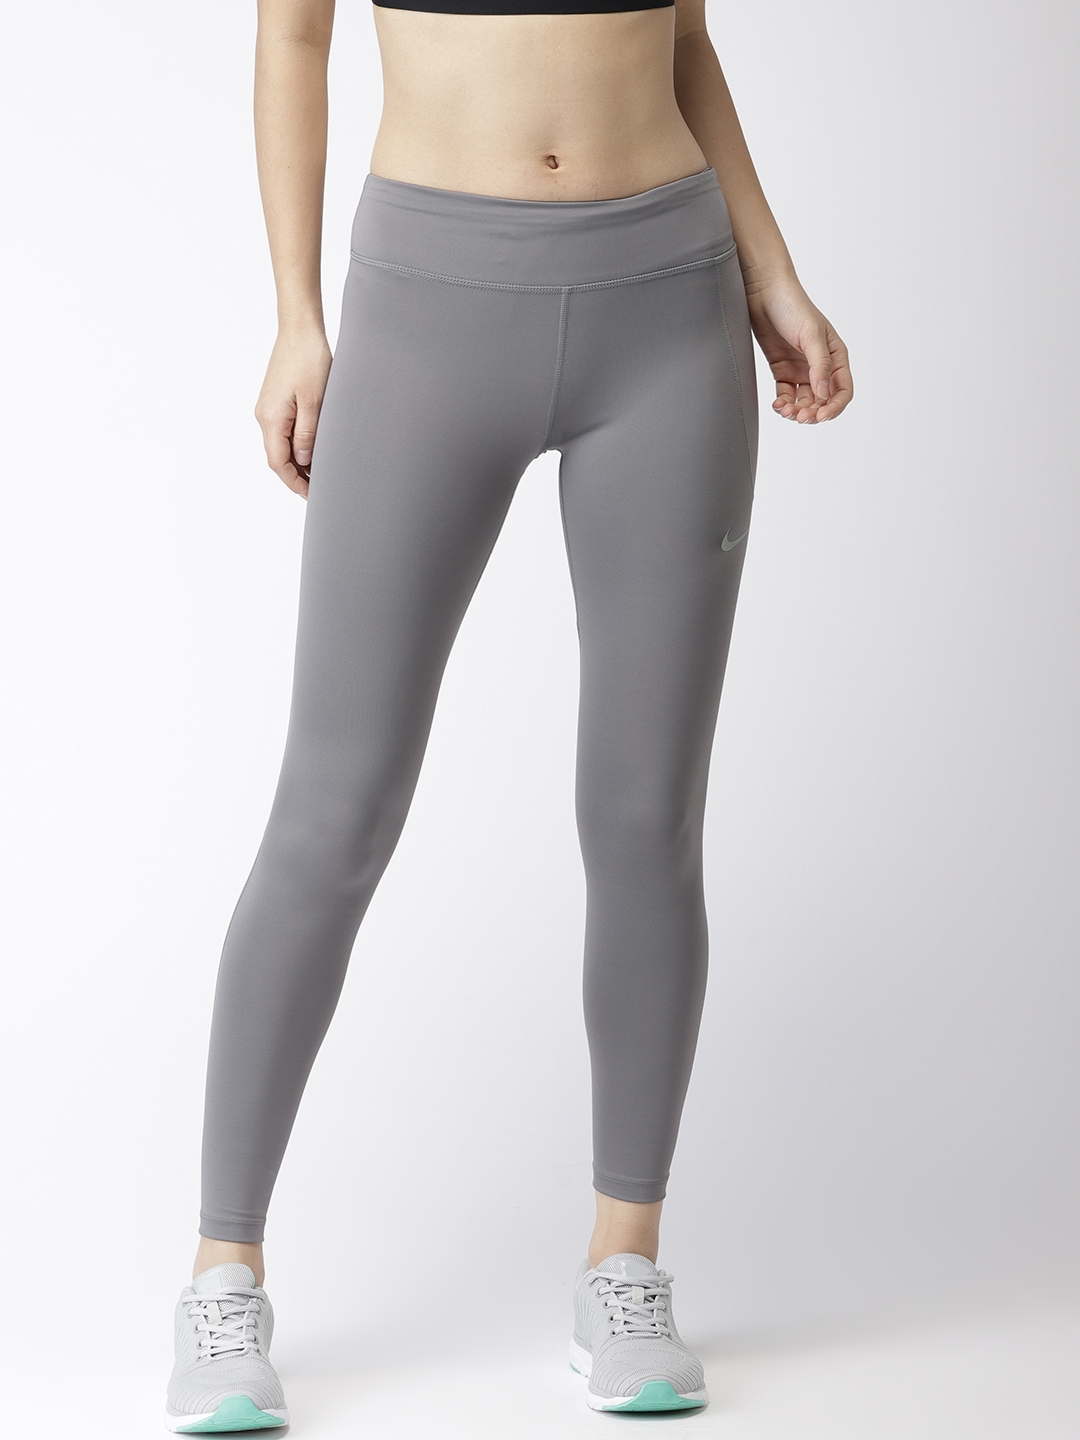 fa729490bfeb7 Buy Nike Women Grey Solid Tight Fit FAST Dri FIT Running Tights ...